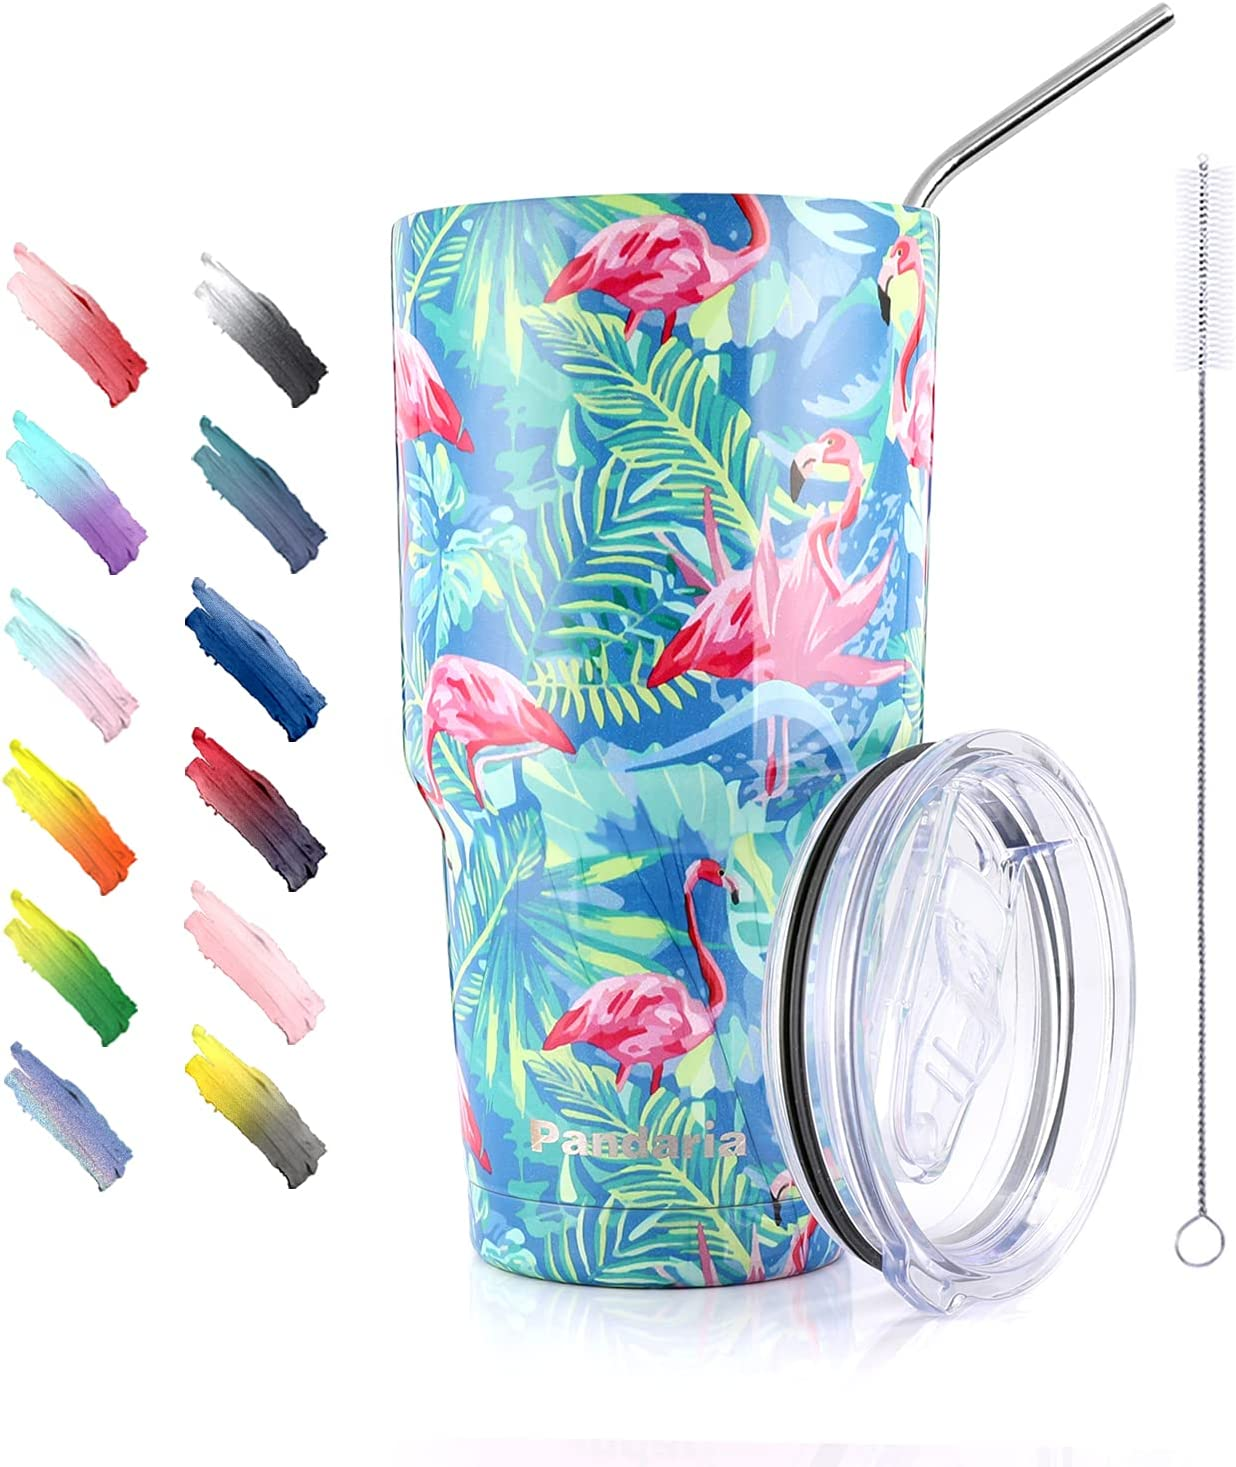 Pandaria 30 oz Stainless Steel Vacuum Insulated Tumbler with Splash Proof Lid and Metal Straw - Double Wall Travel Mug Water Coffee Cup for Ice Drink & Hot Beverage, Flamingo Blues